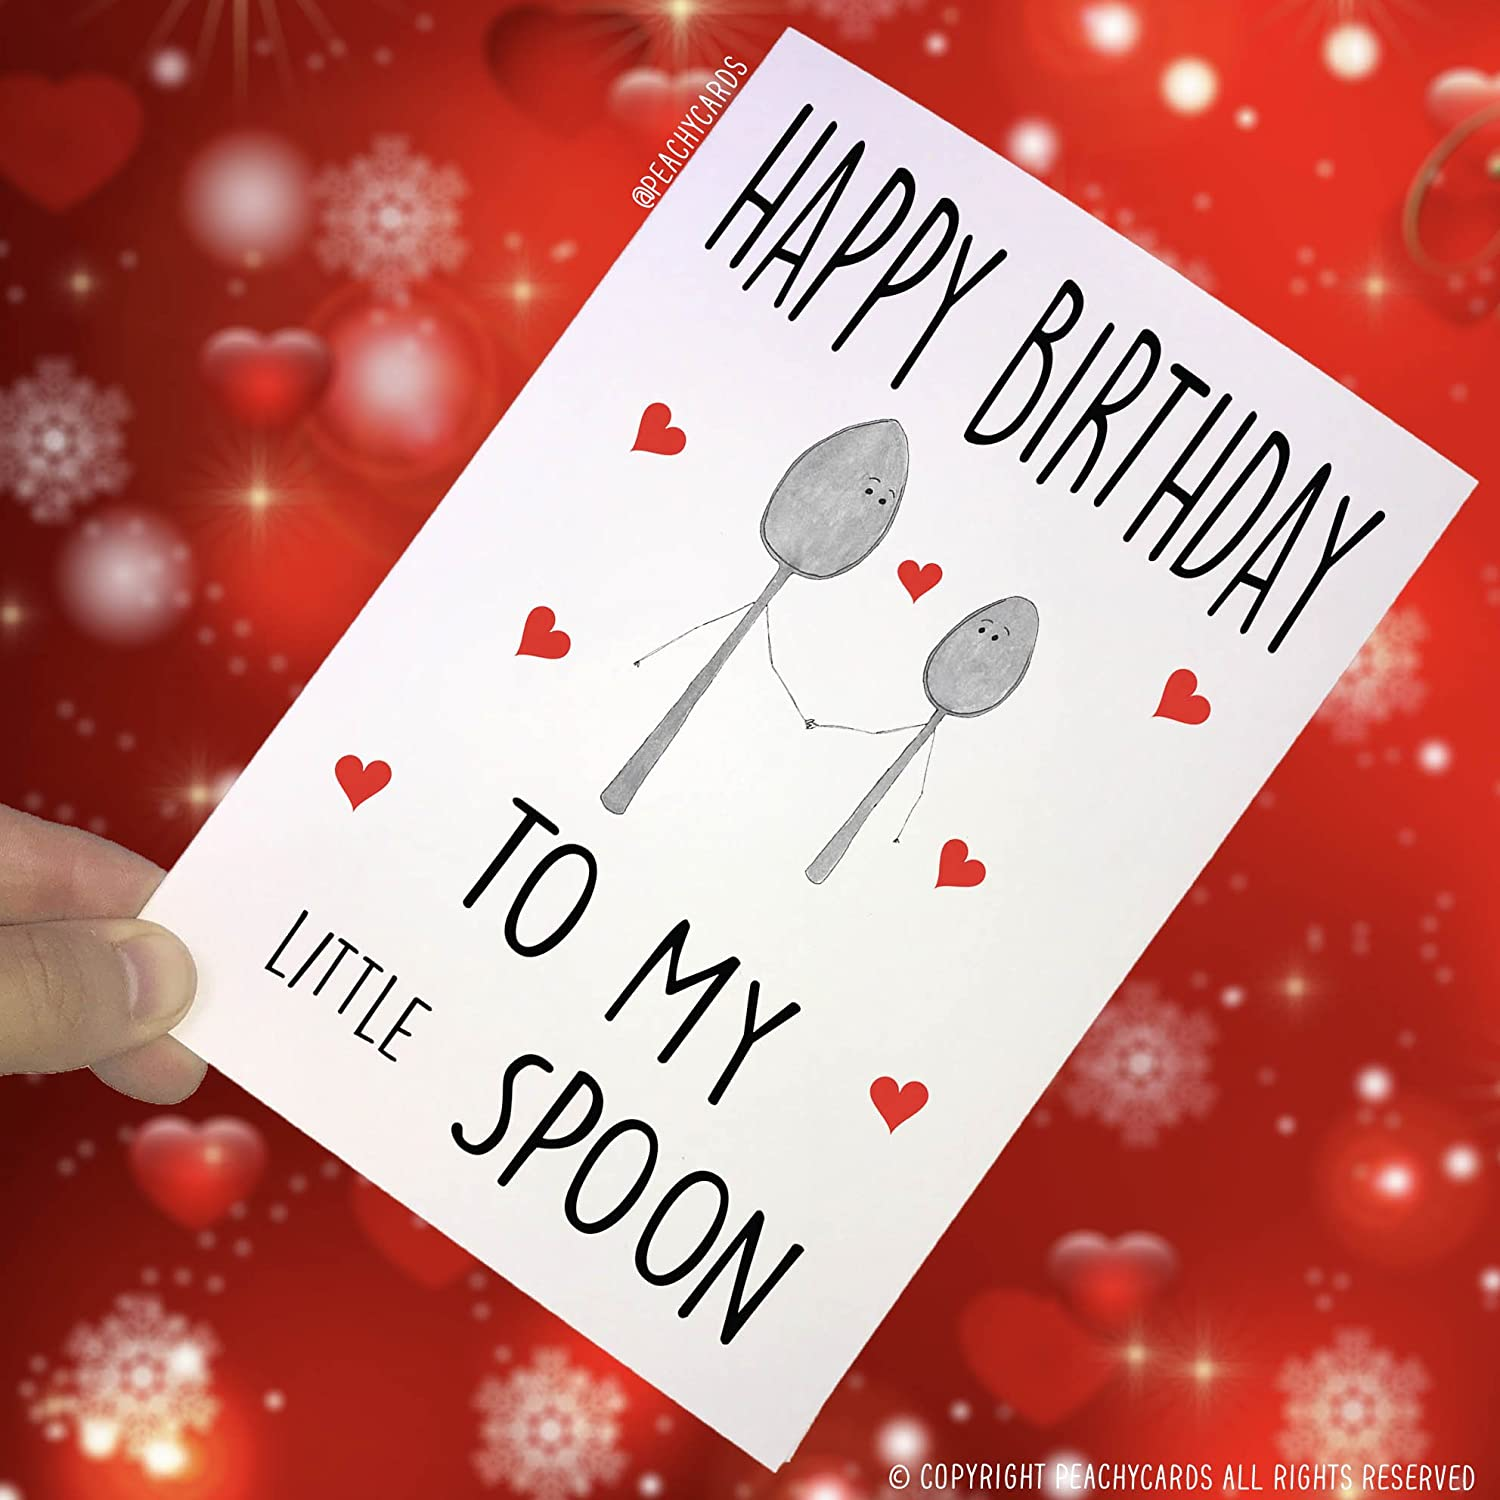 Amazing Peachy Antics Birthday Cards Little Spoon Wife Cards Funny Personalised Birthday Cards Paralily Jamesorg